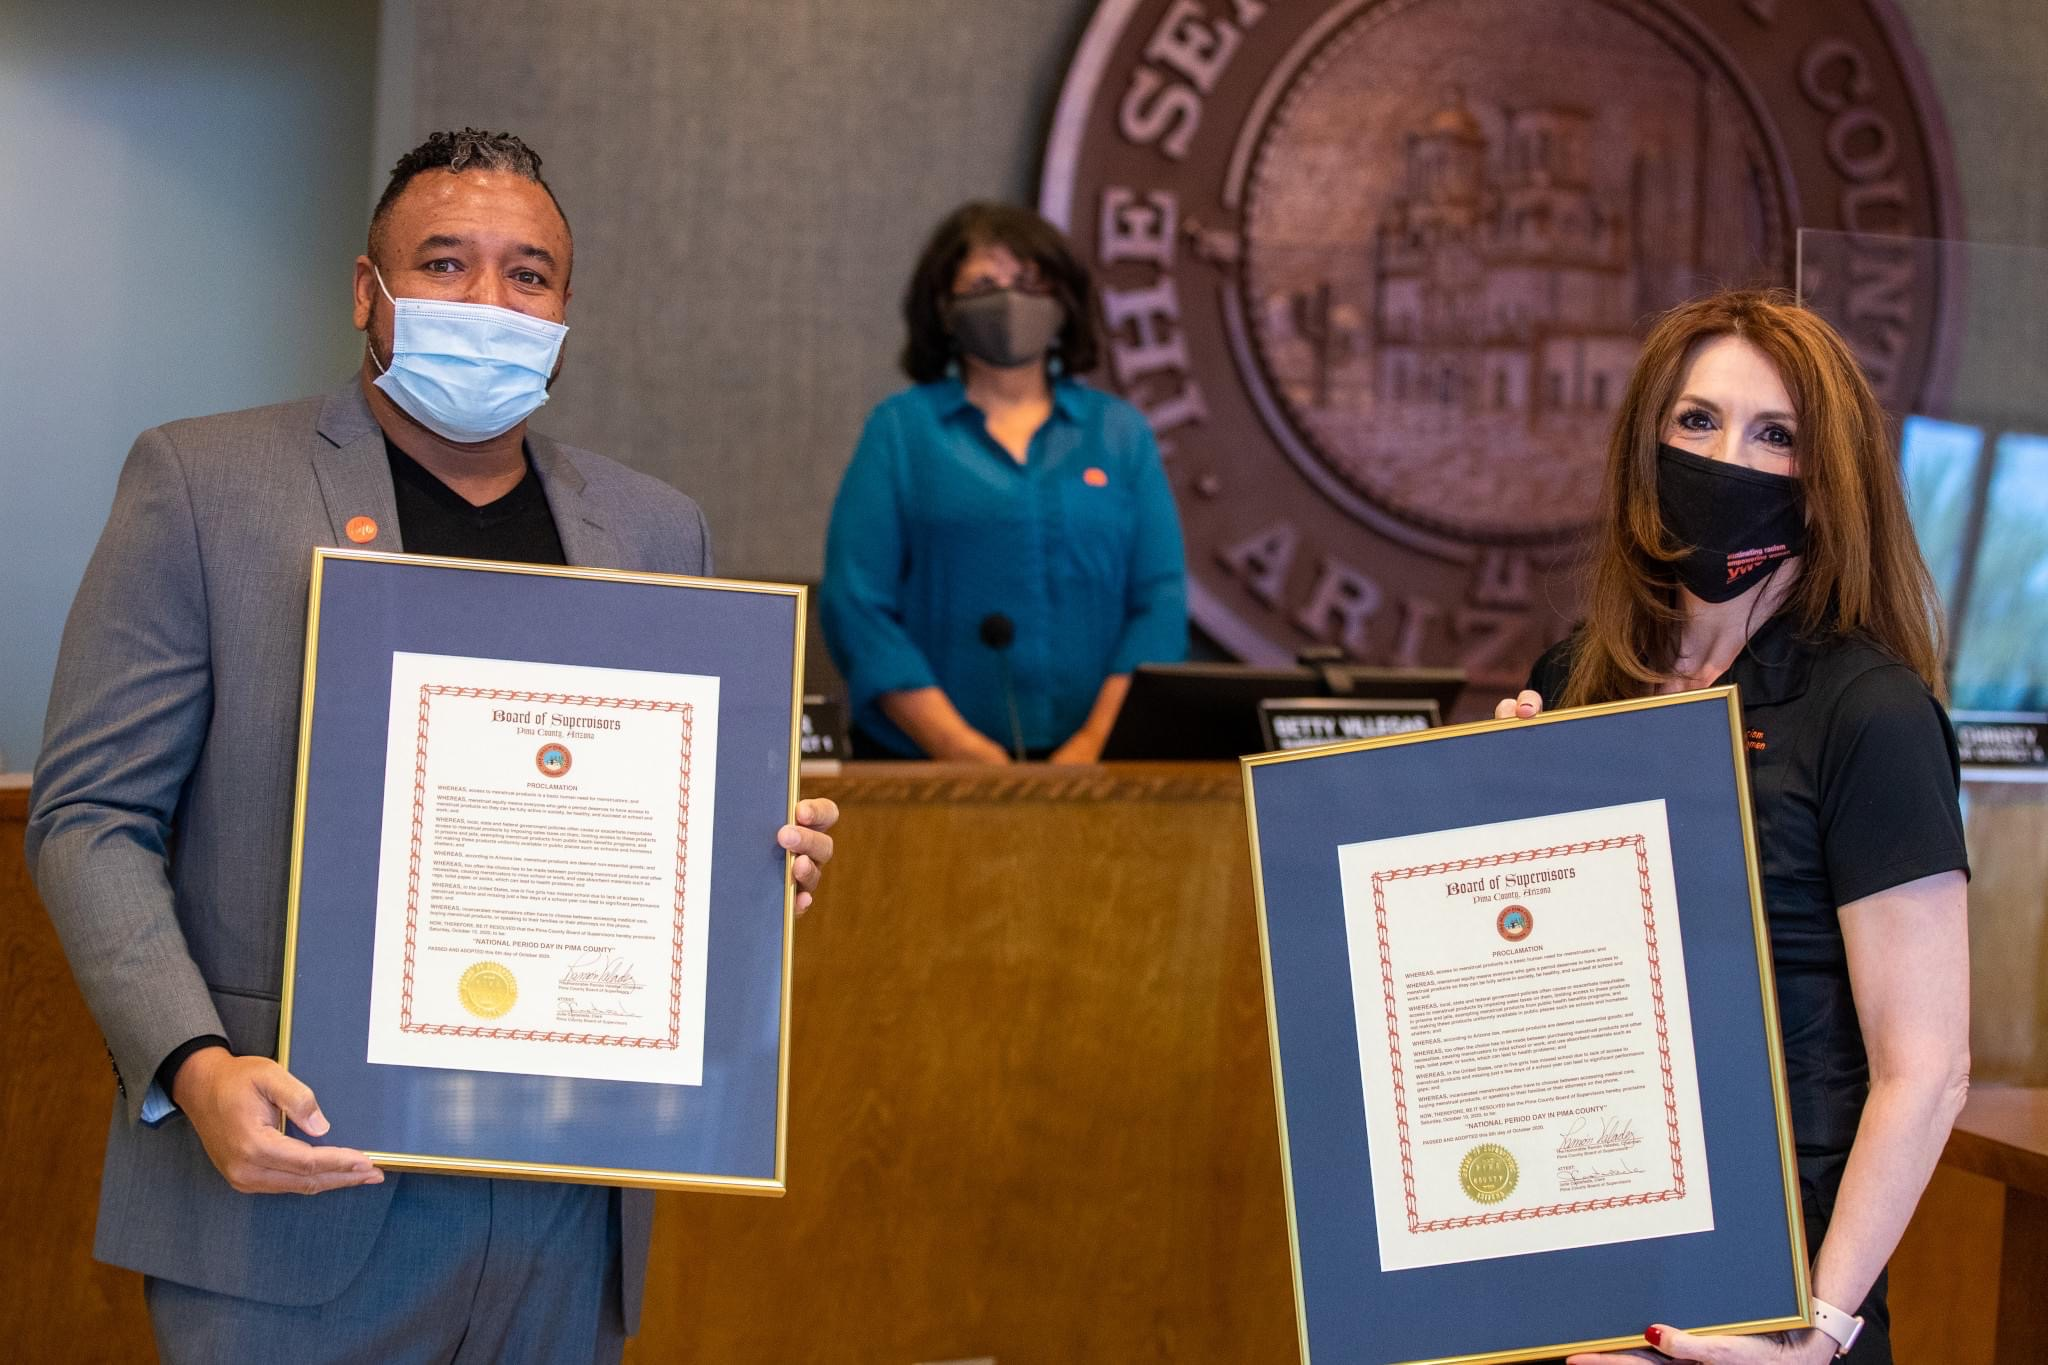 YWCA and Diaper Bank CEO's accepting period day proclamation